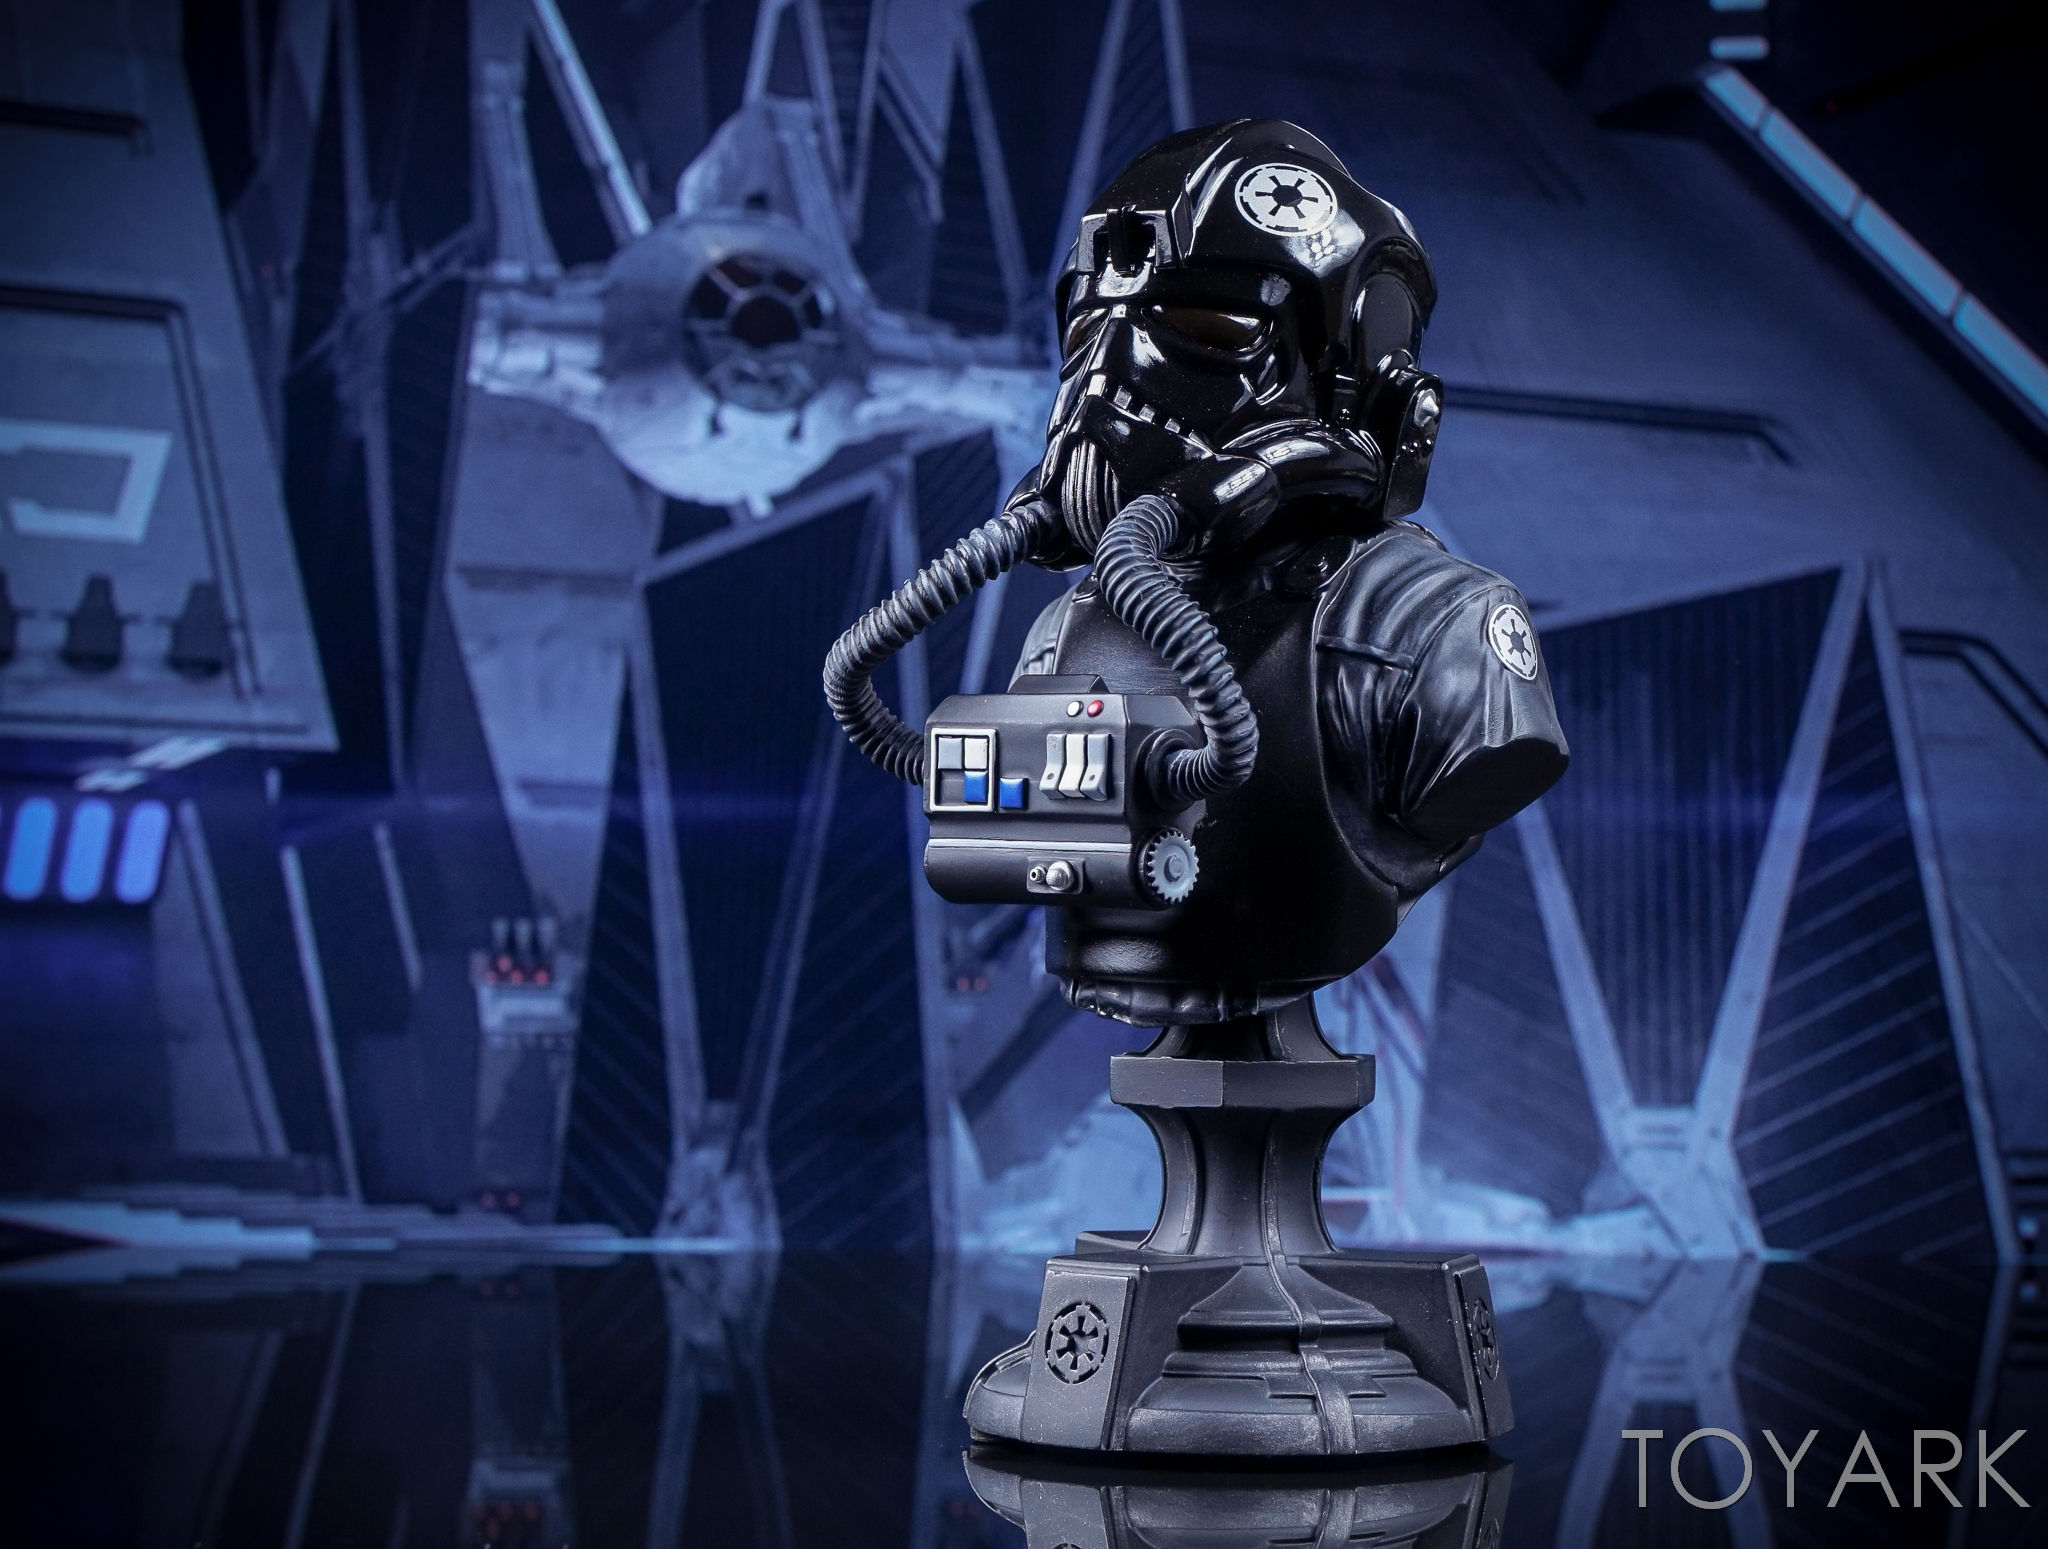 http://news.toyark.com/wp-content/uploads/sites/4/2016/09/GG-Star-Wars-TIE-Fighter-Pilot-Bust-026.jpg